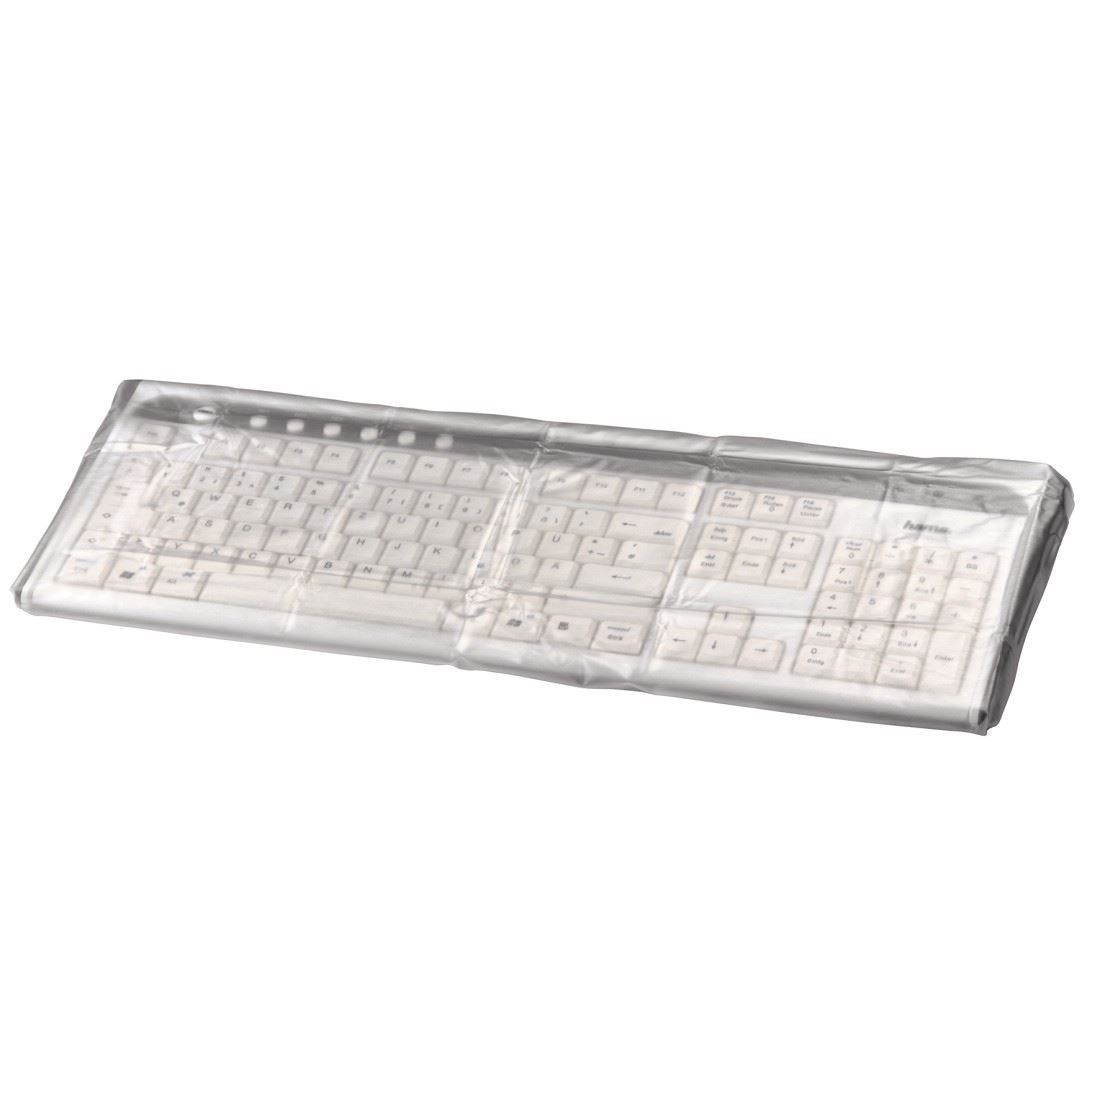 Hama Transparent Computer Keyboard Dust Cover Water